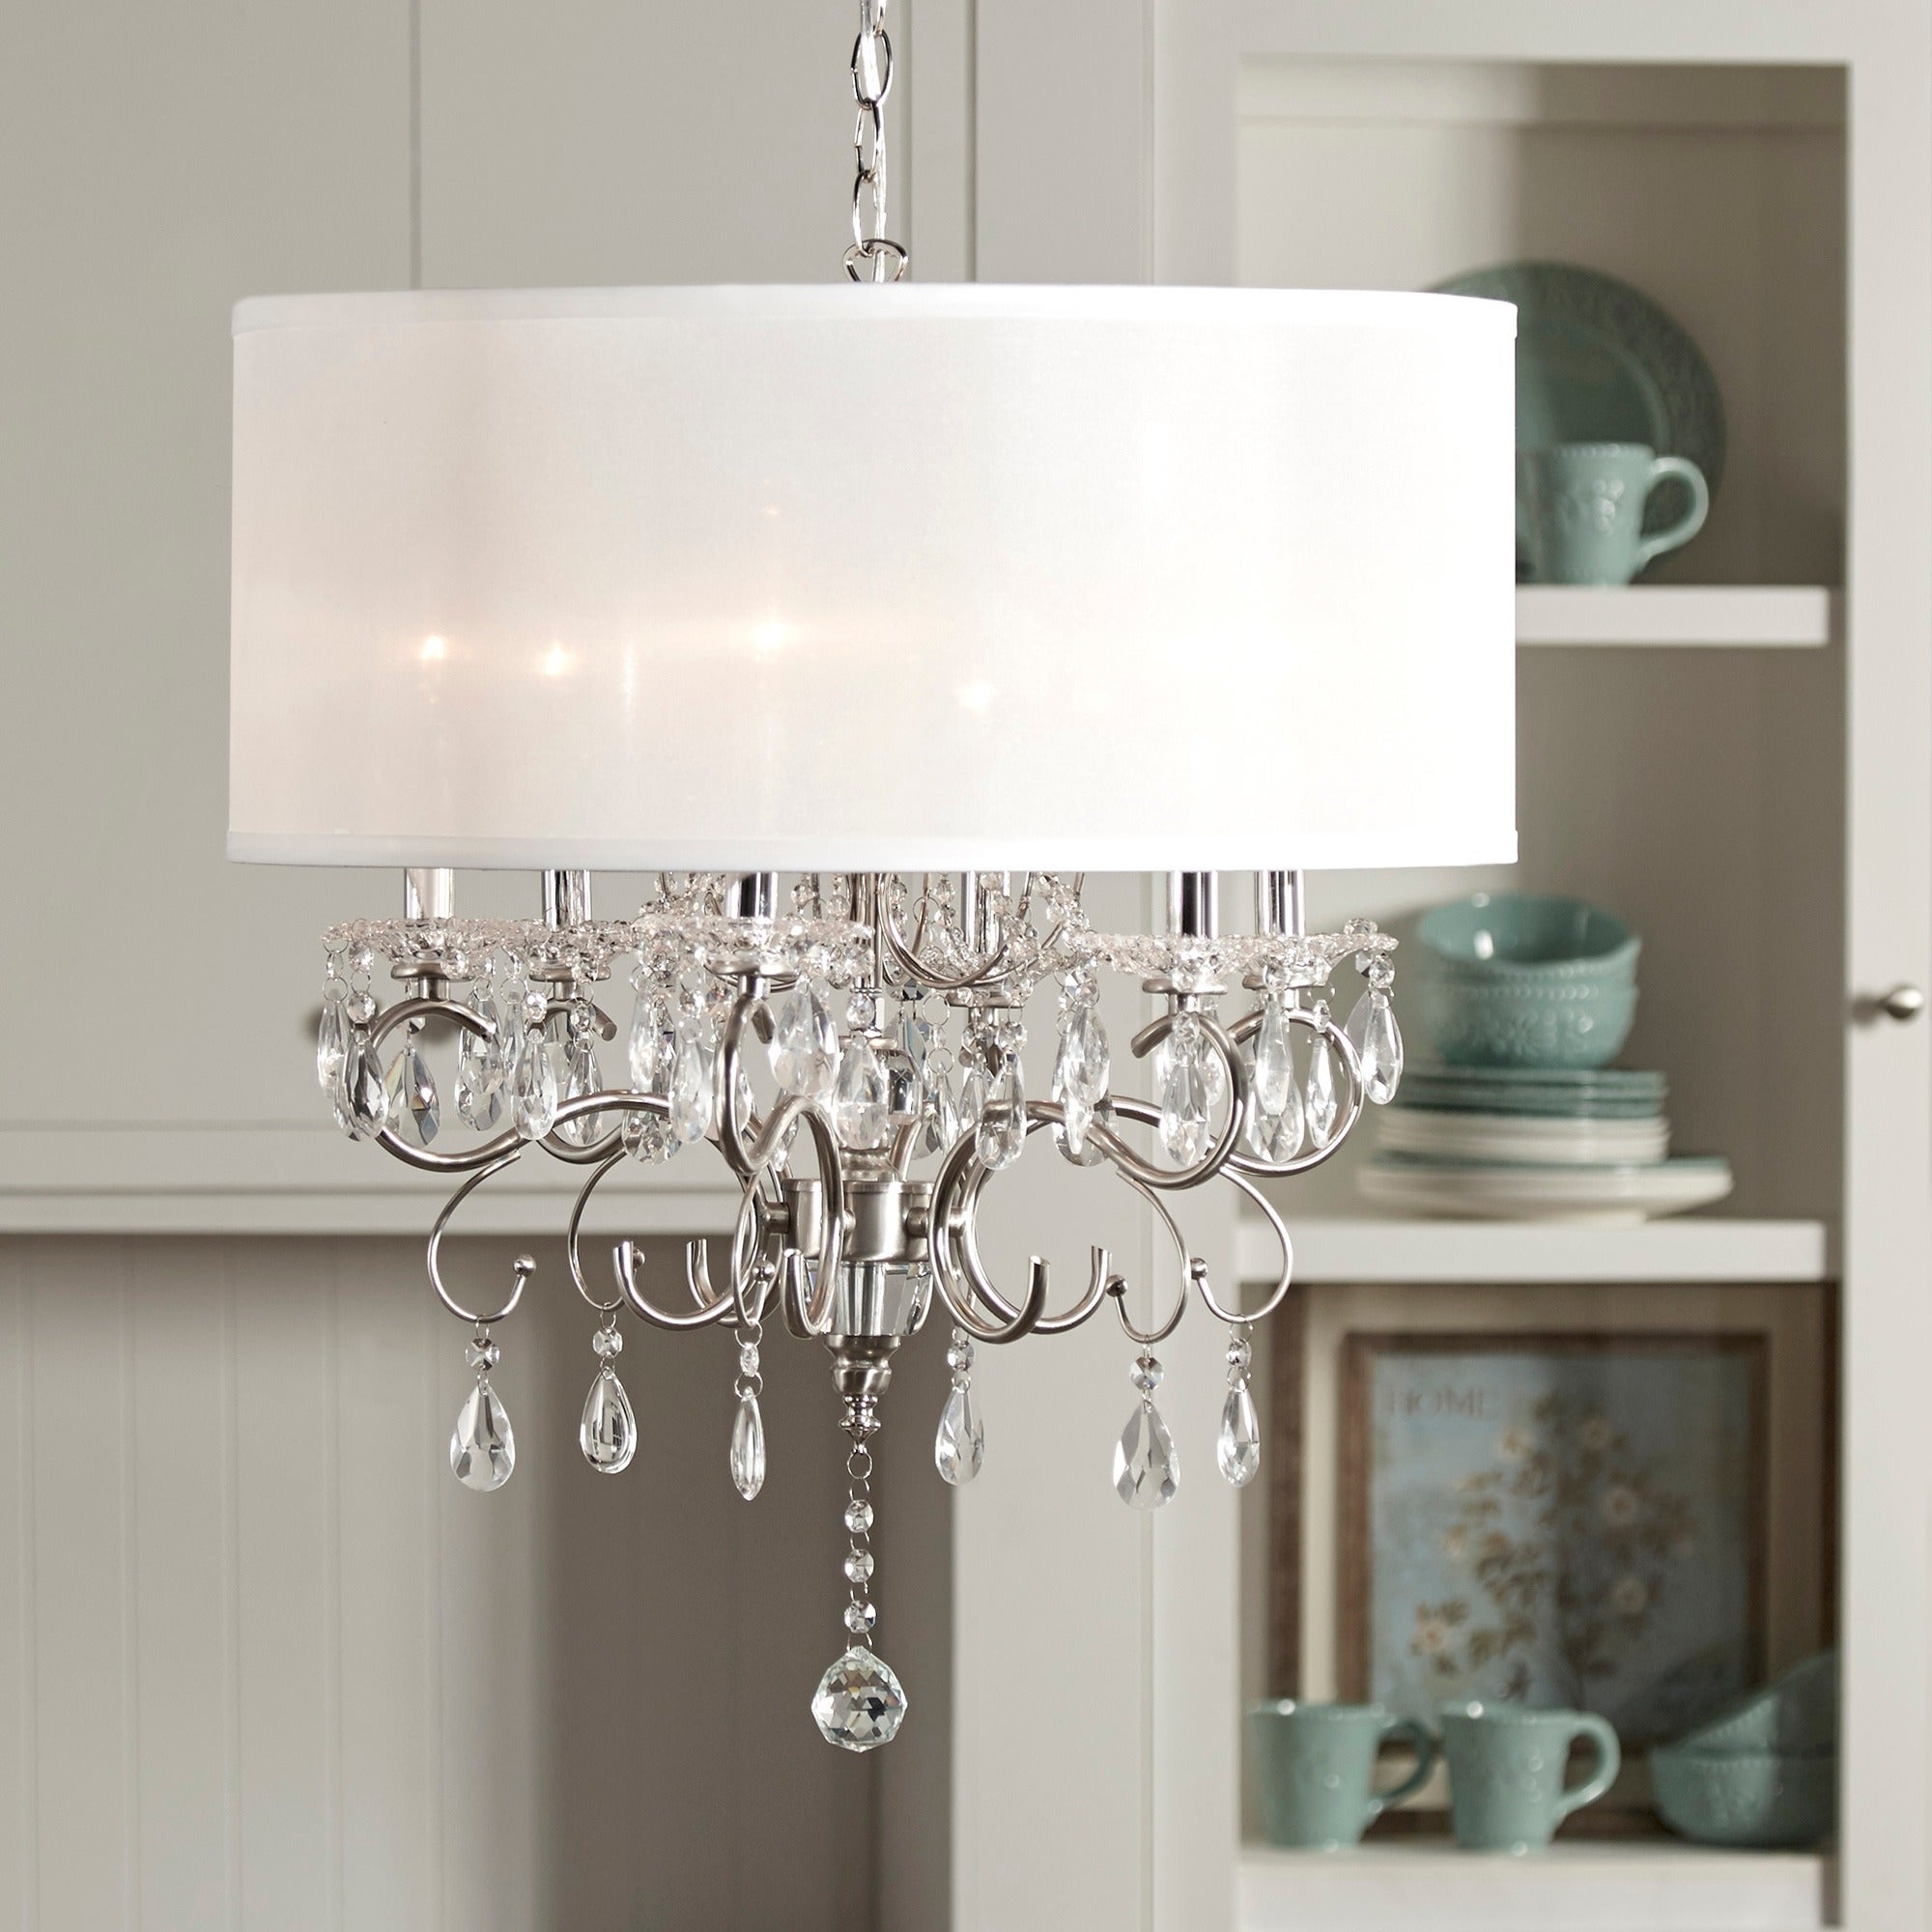 Shop silver mist hanging crystal drum shade chandelier by inspire q shop silver mist hanging crystal drum shade chandelier by inspire q classic free shipping today overstock 6002814 aloadofball Gallery